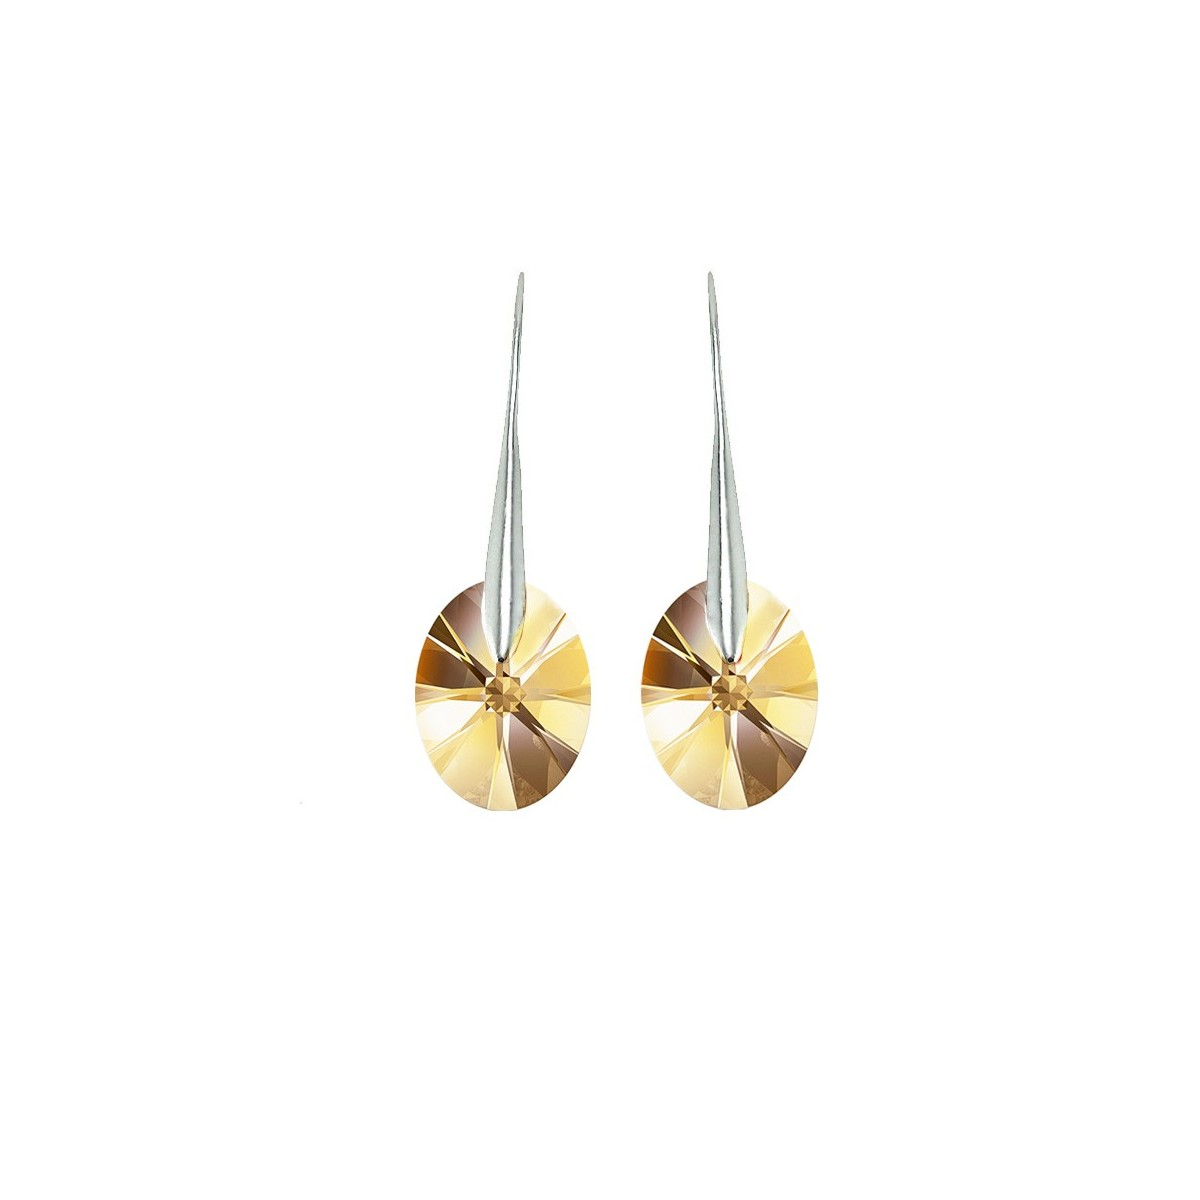 Boucles d'oreilles So Charm ornées d'un cristal golden shadow made with crystal from Swarovski